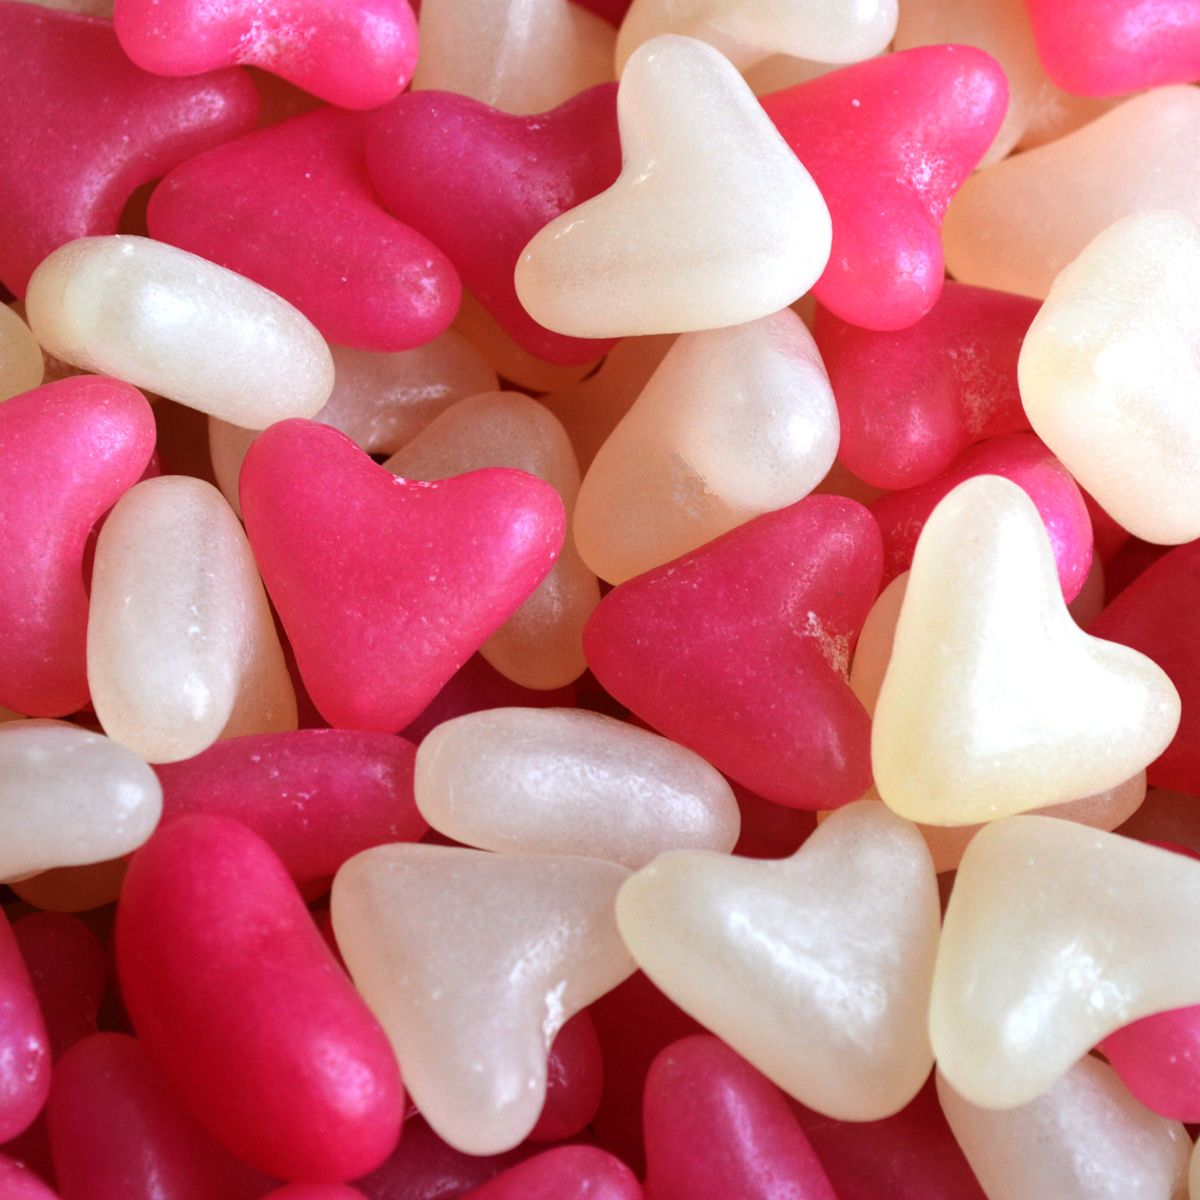 Jelly Beans clipart i love Love Hearts Art Download jelly